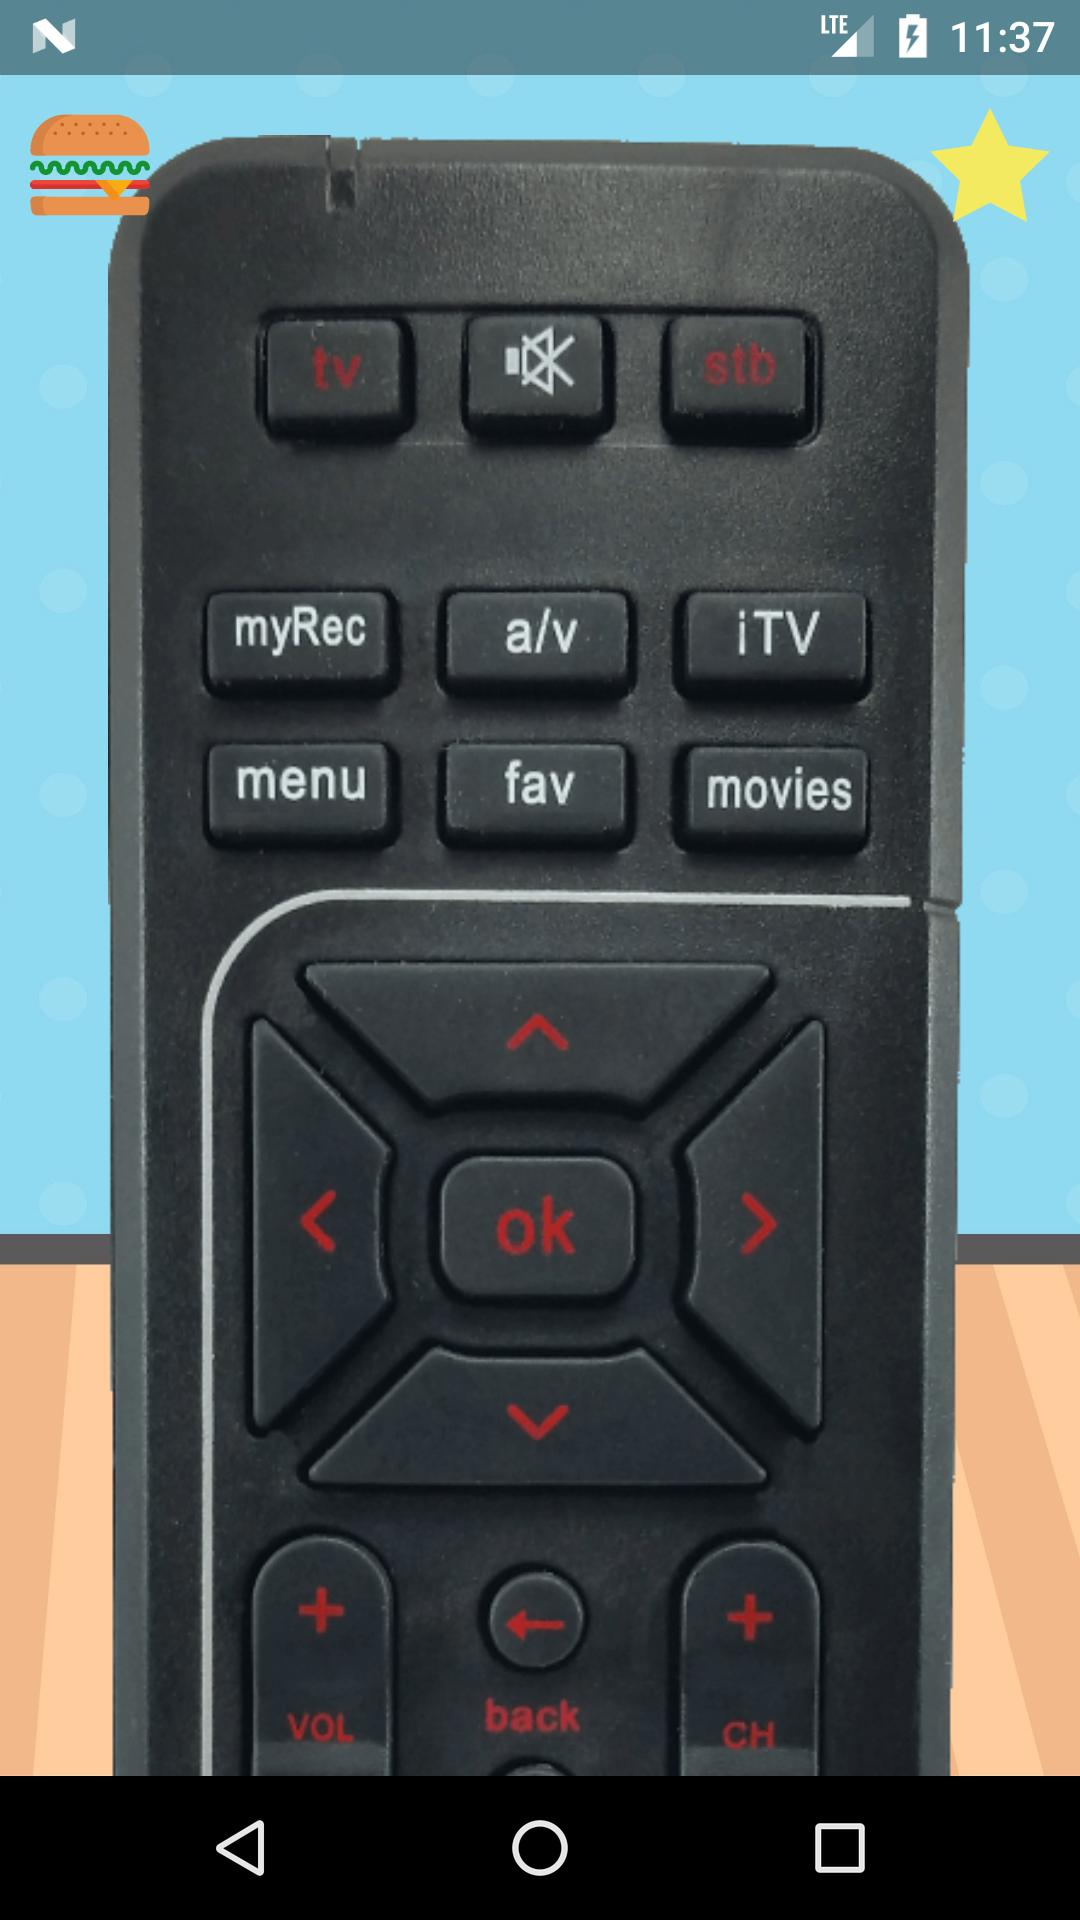 Remote Control For Airtel (unofficial) for Android - APK